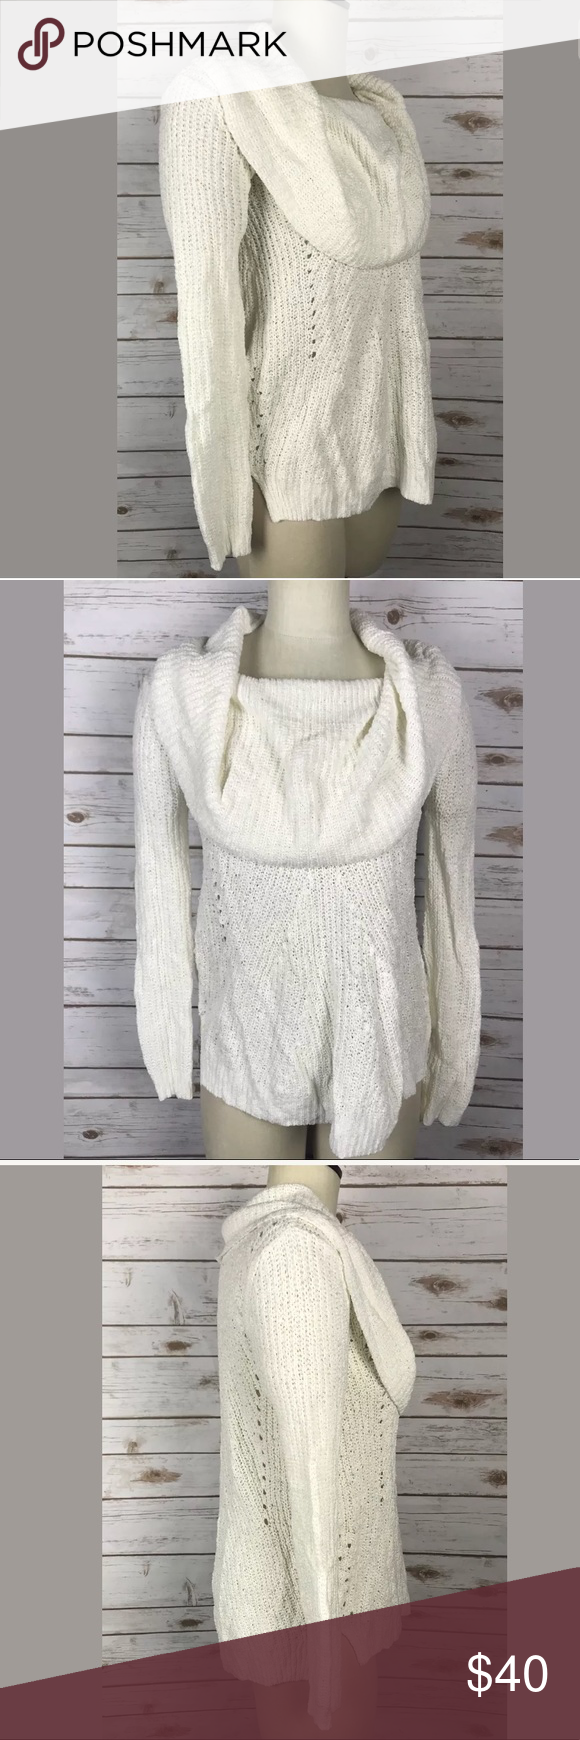 Anthropologie Moth Cowl Neck Sweater XS NWT